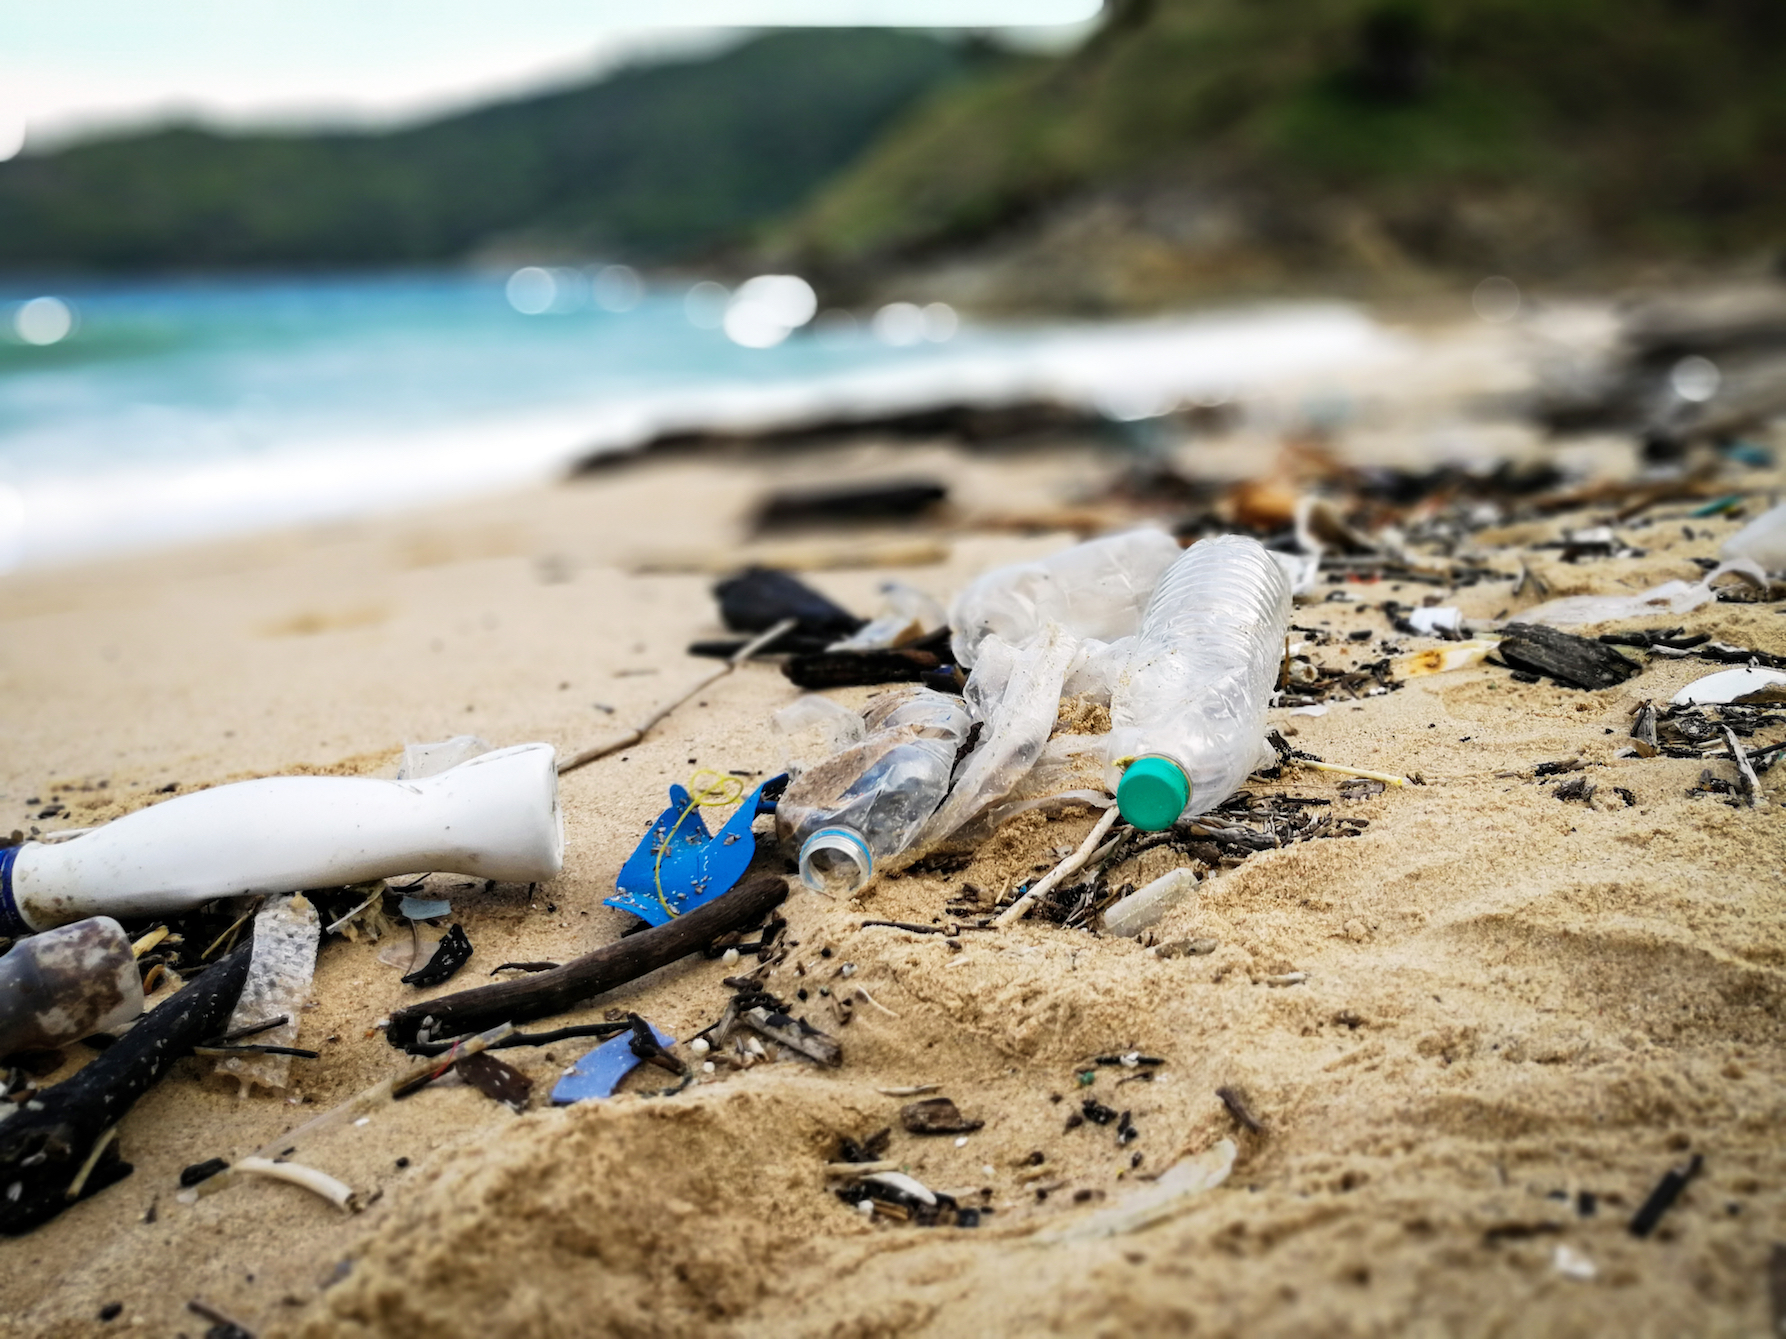 Researchers found that removing debris and plastics from beaches could equate to a 46 million dollar boost to the economy of Orange County alone.